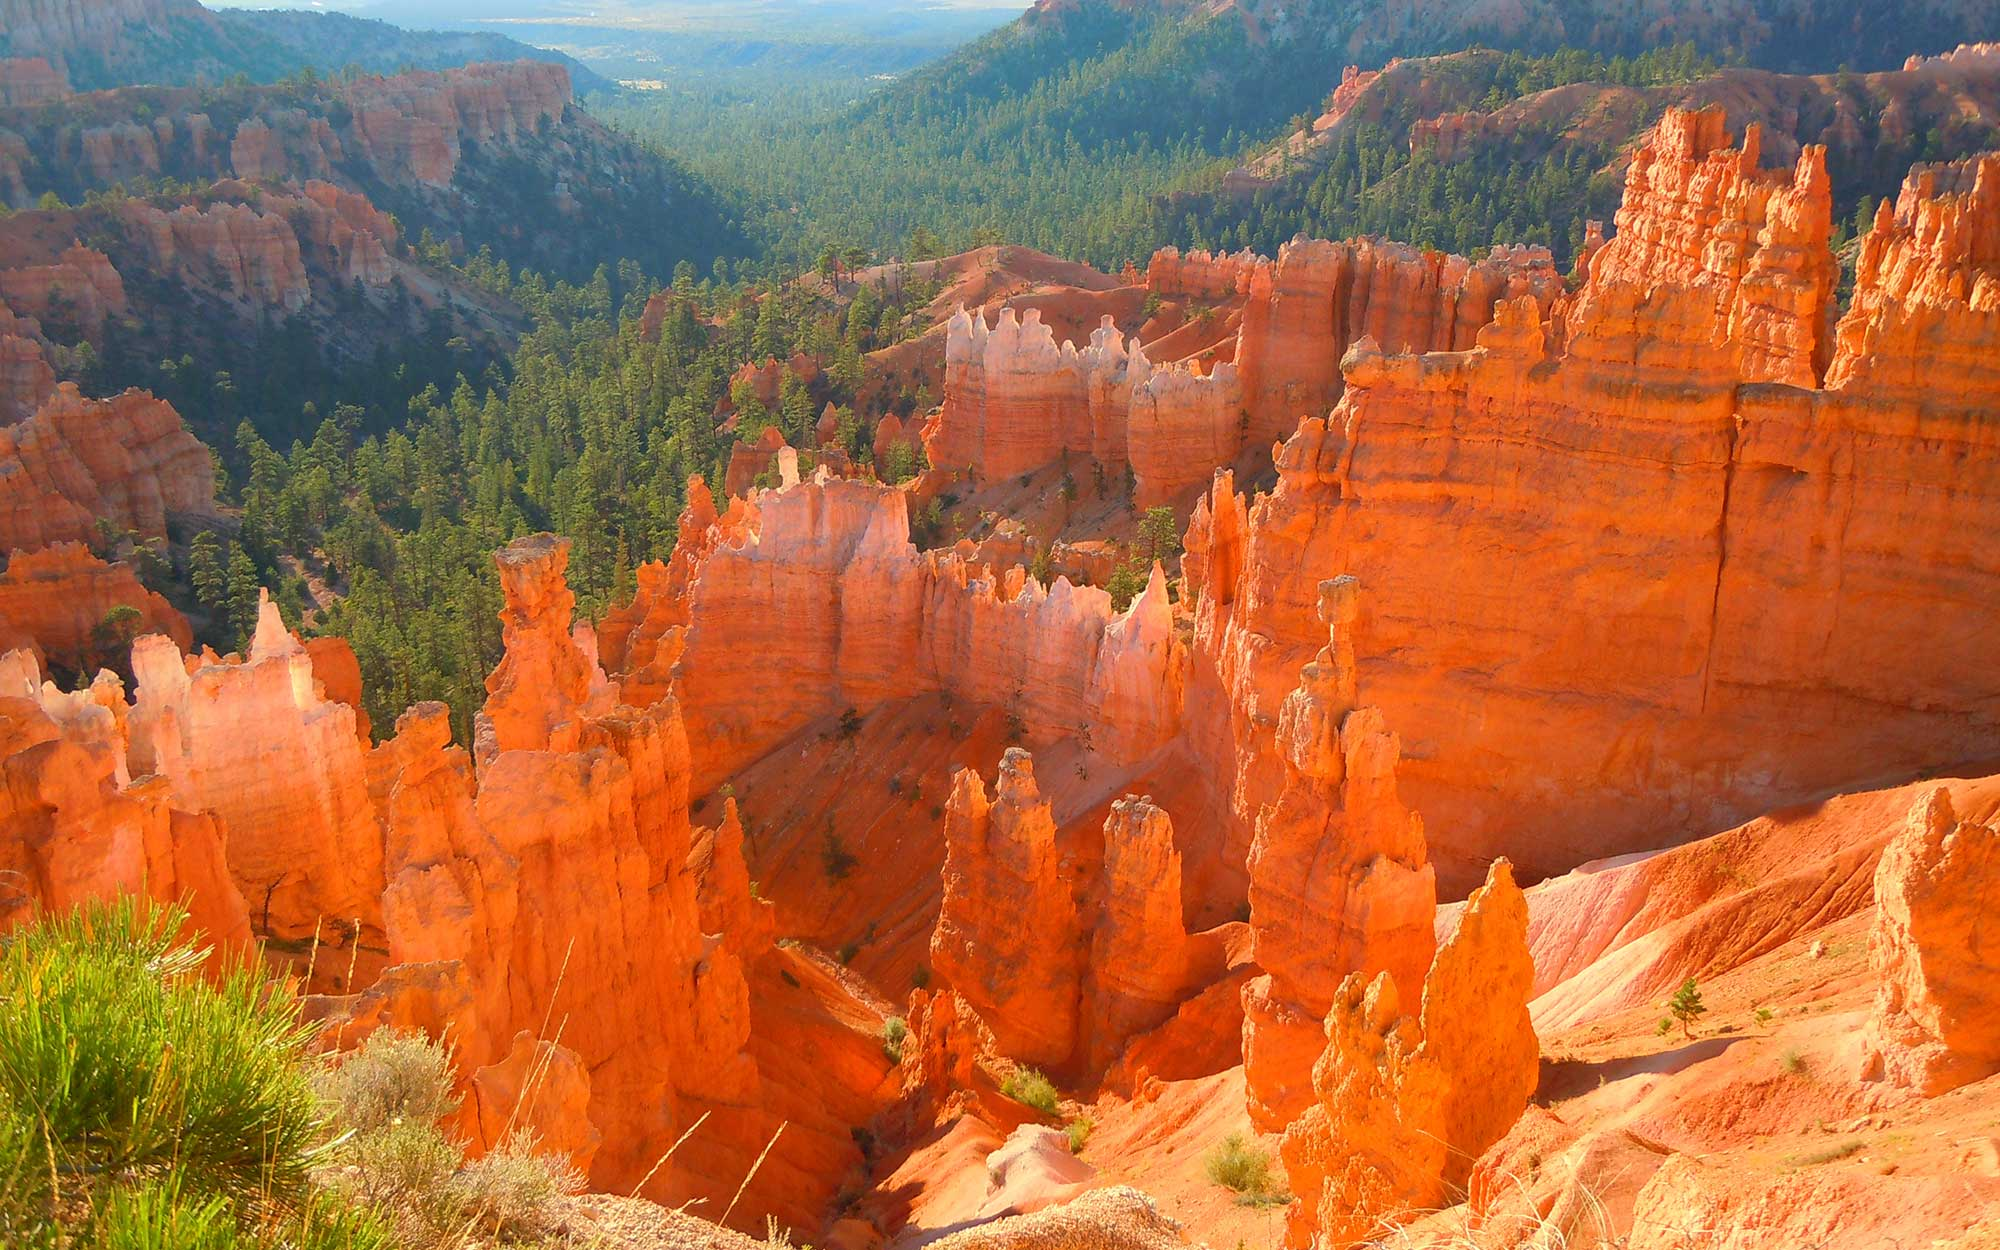 (GERMANY OUT) Die Morgensonne scheint auf die Felsengebilde im Bryce Canyon Nationalpark, aufgenommen am 20. August 2012.   (Photo by Gerig/ullstein bild via Getty Images)